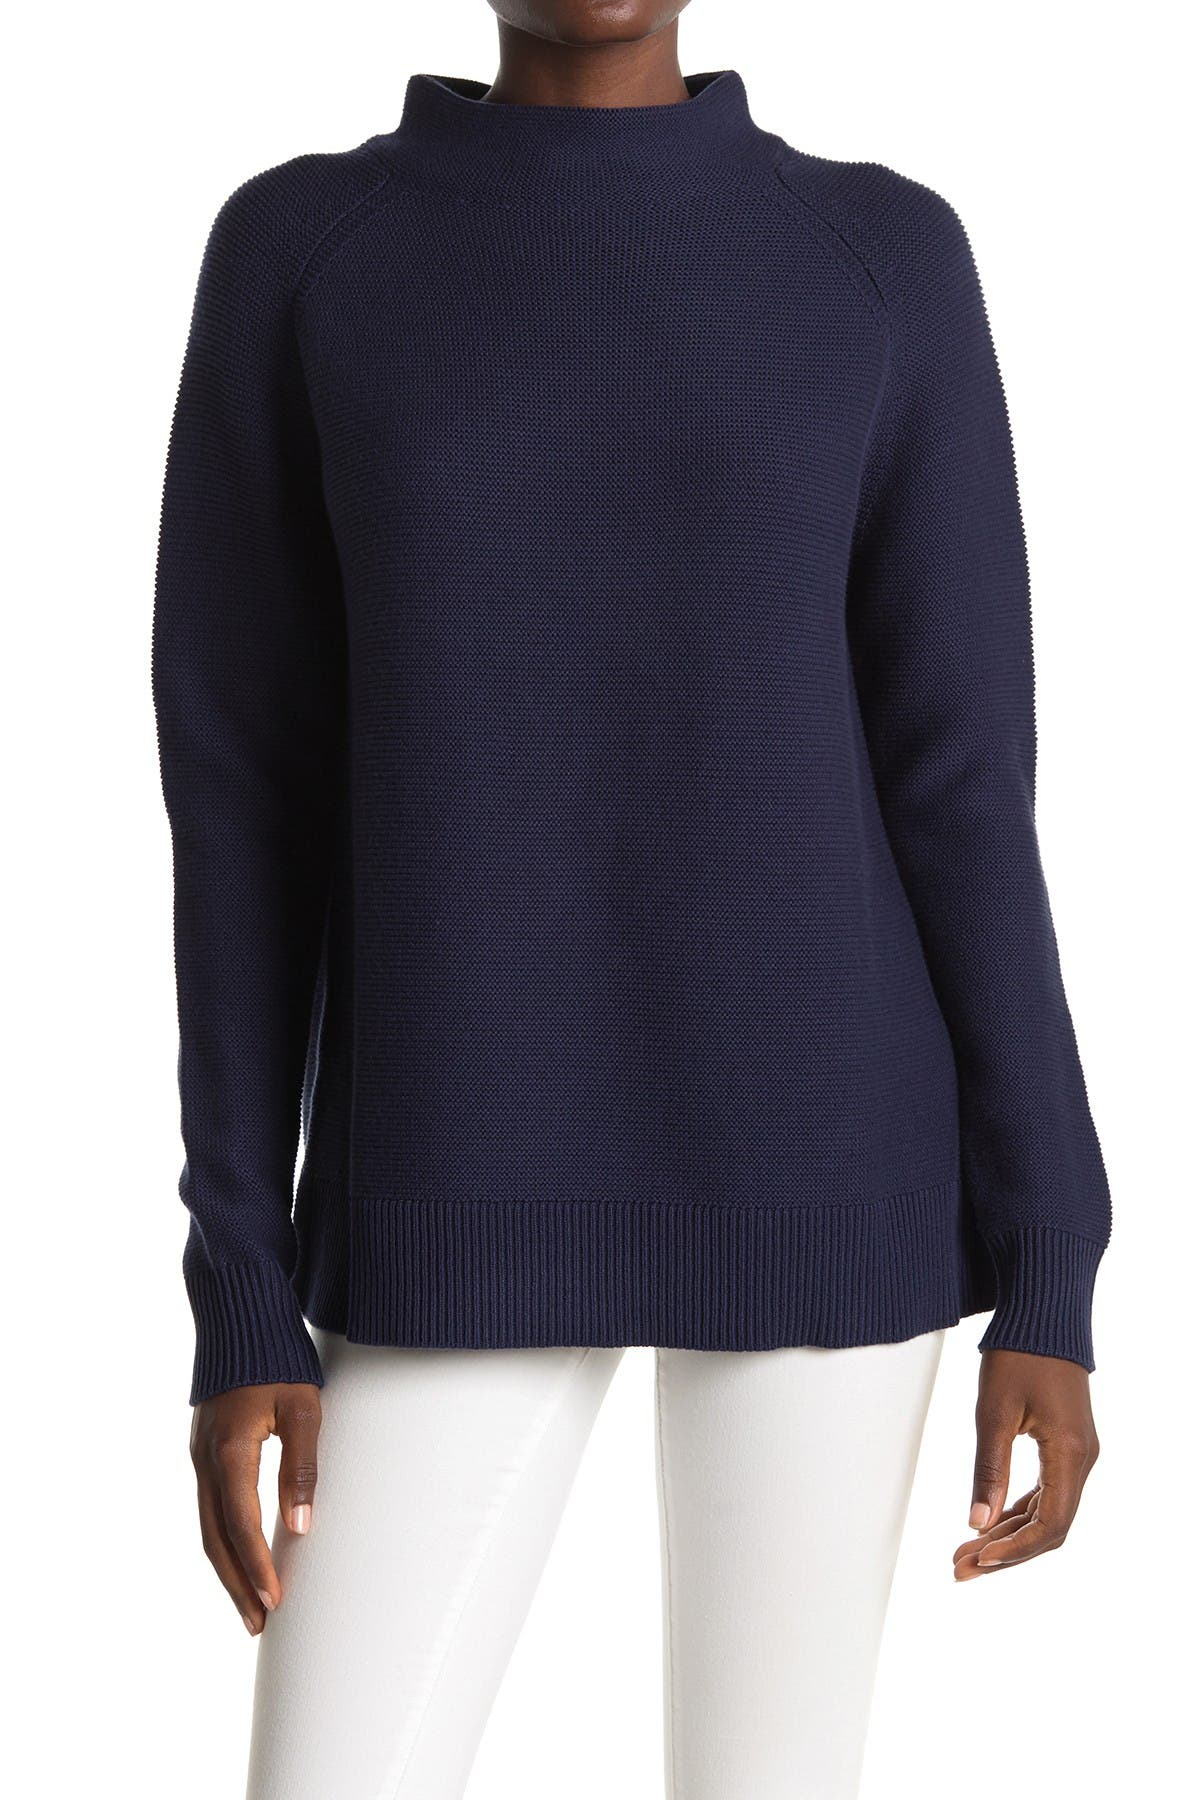 Image of Kinross Chunky Knit Funnel Neck Sweater